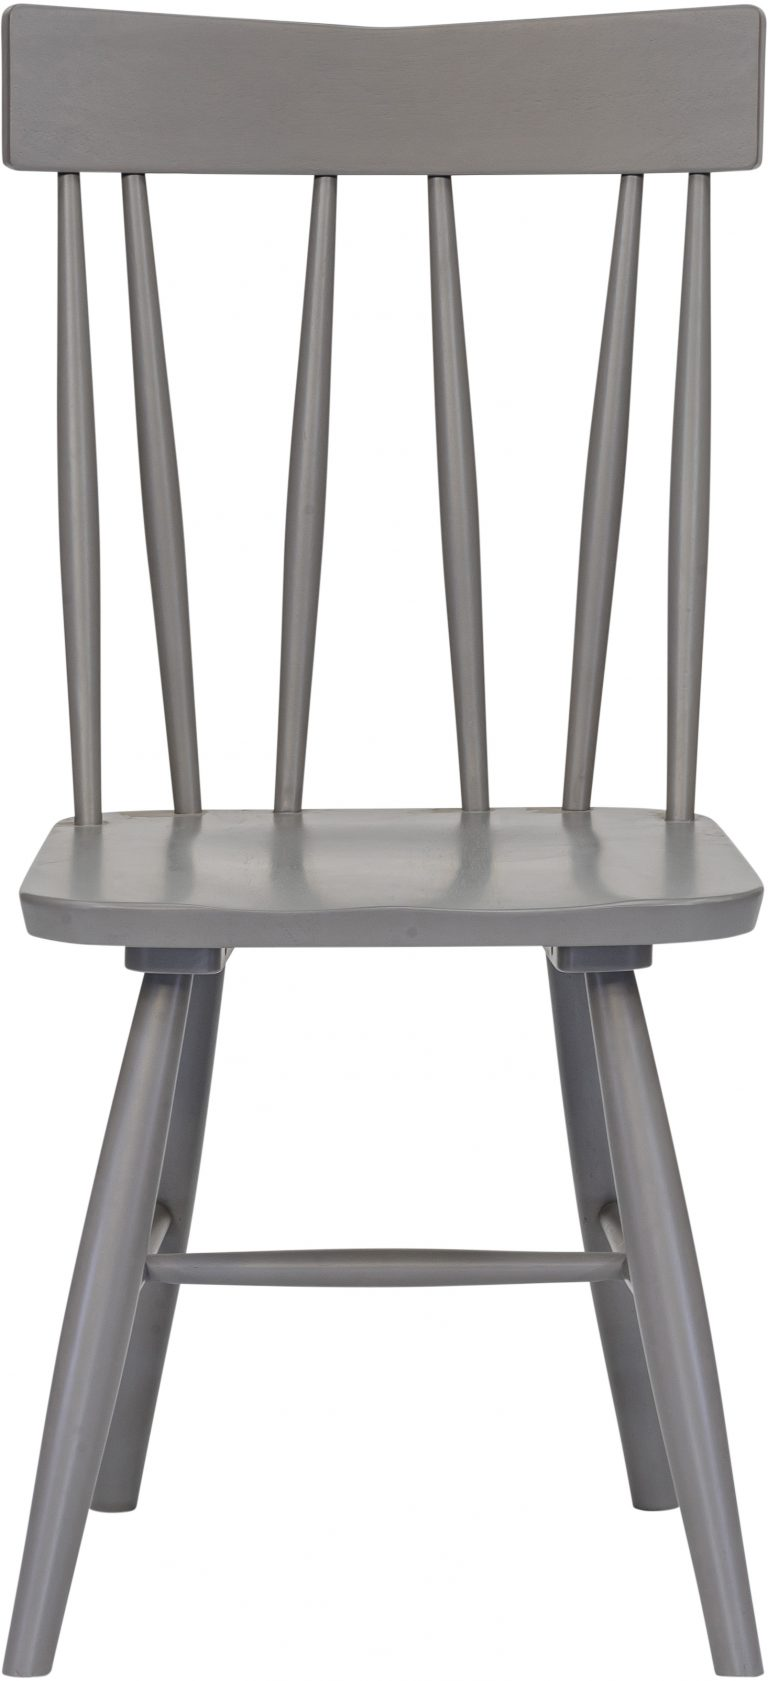 Richmond Light Oak Chevalet Dining Chair Painted Grey (Pair)  | Fully Assembled